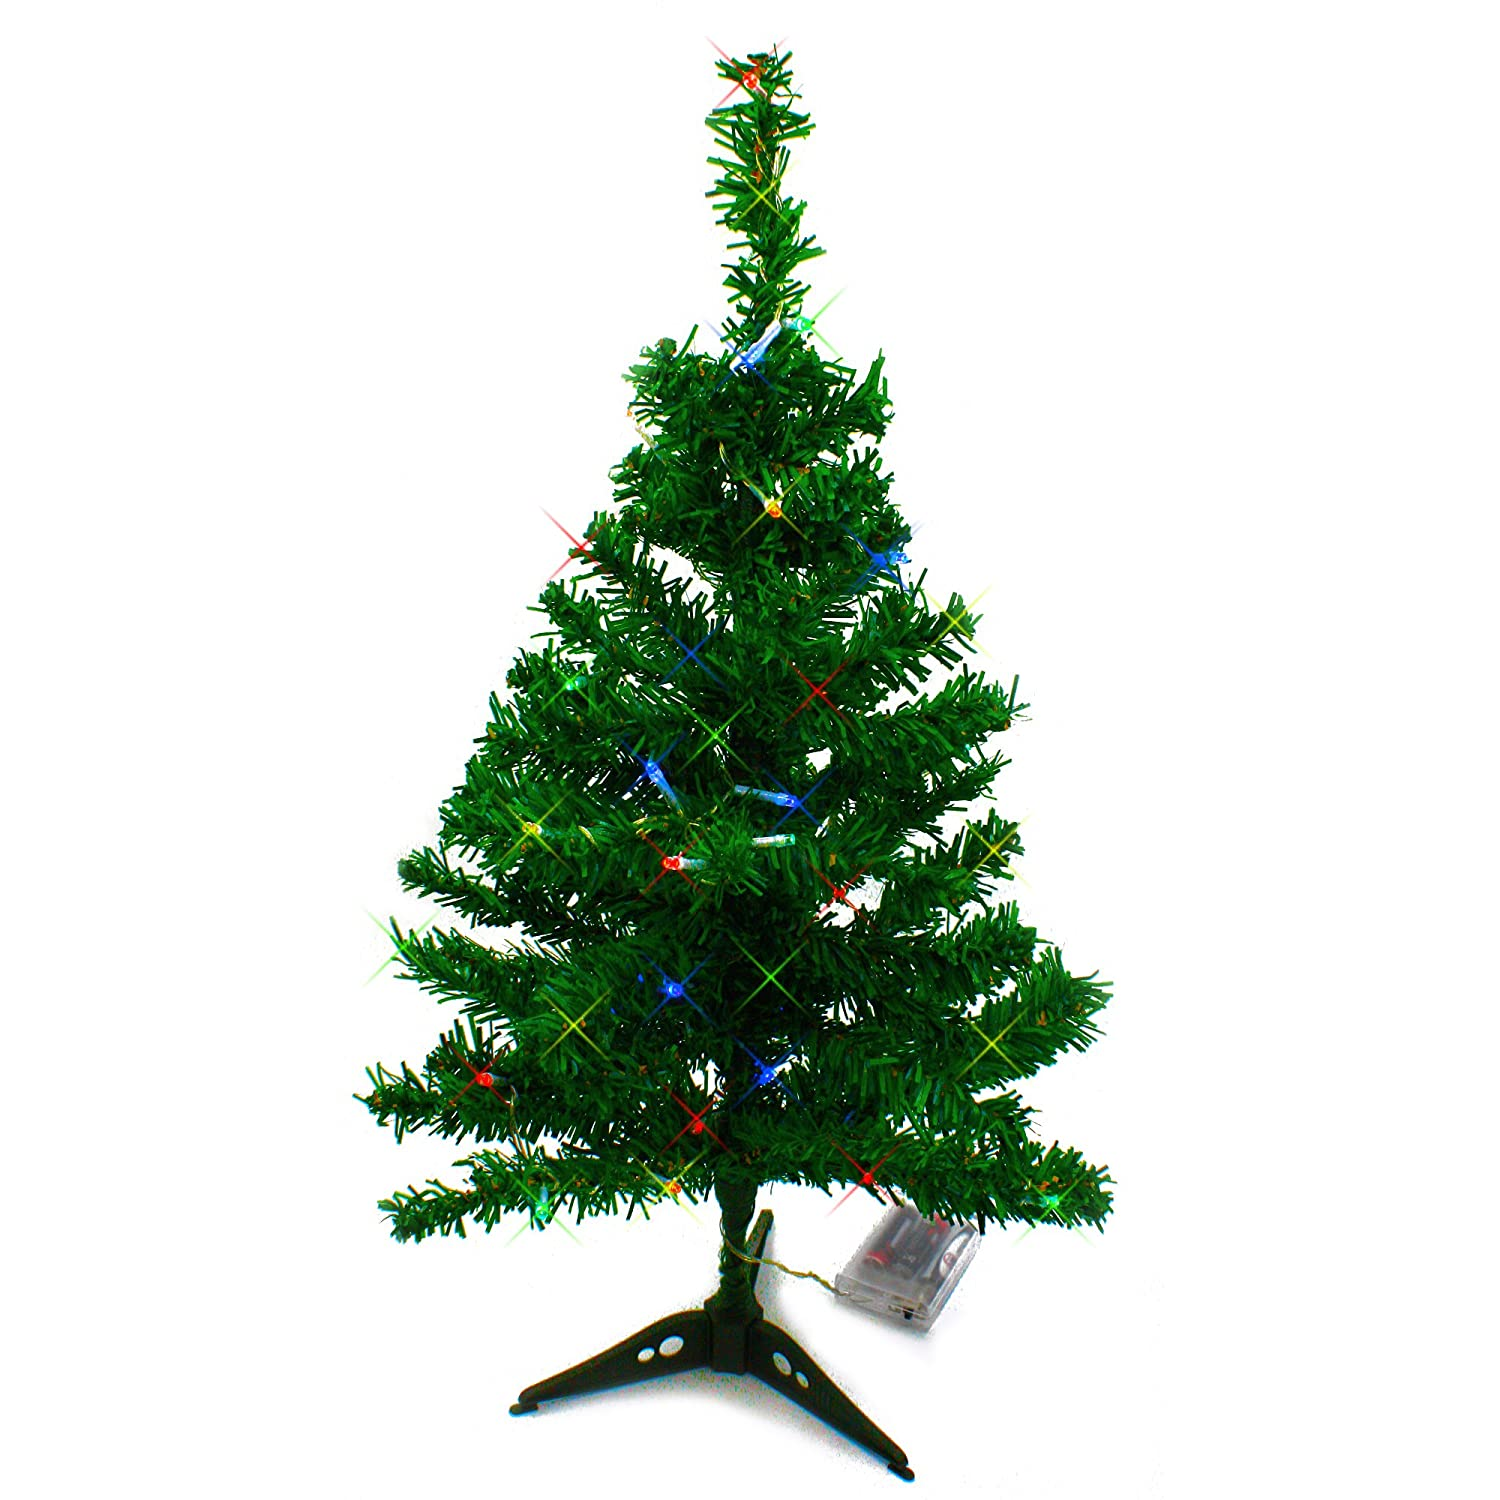 Amazon.com: Wideskall Tabletop Green Christmas Pine Tree with Multi ...